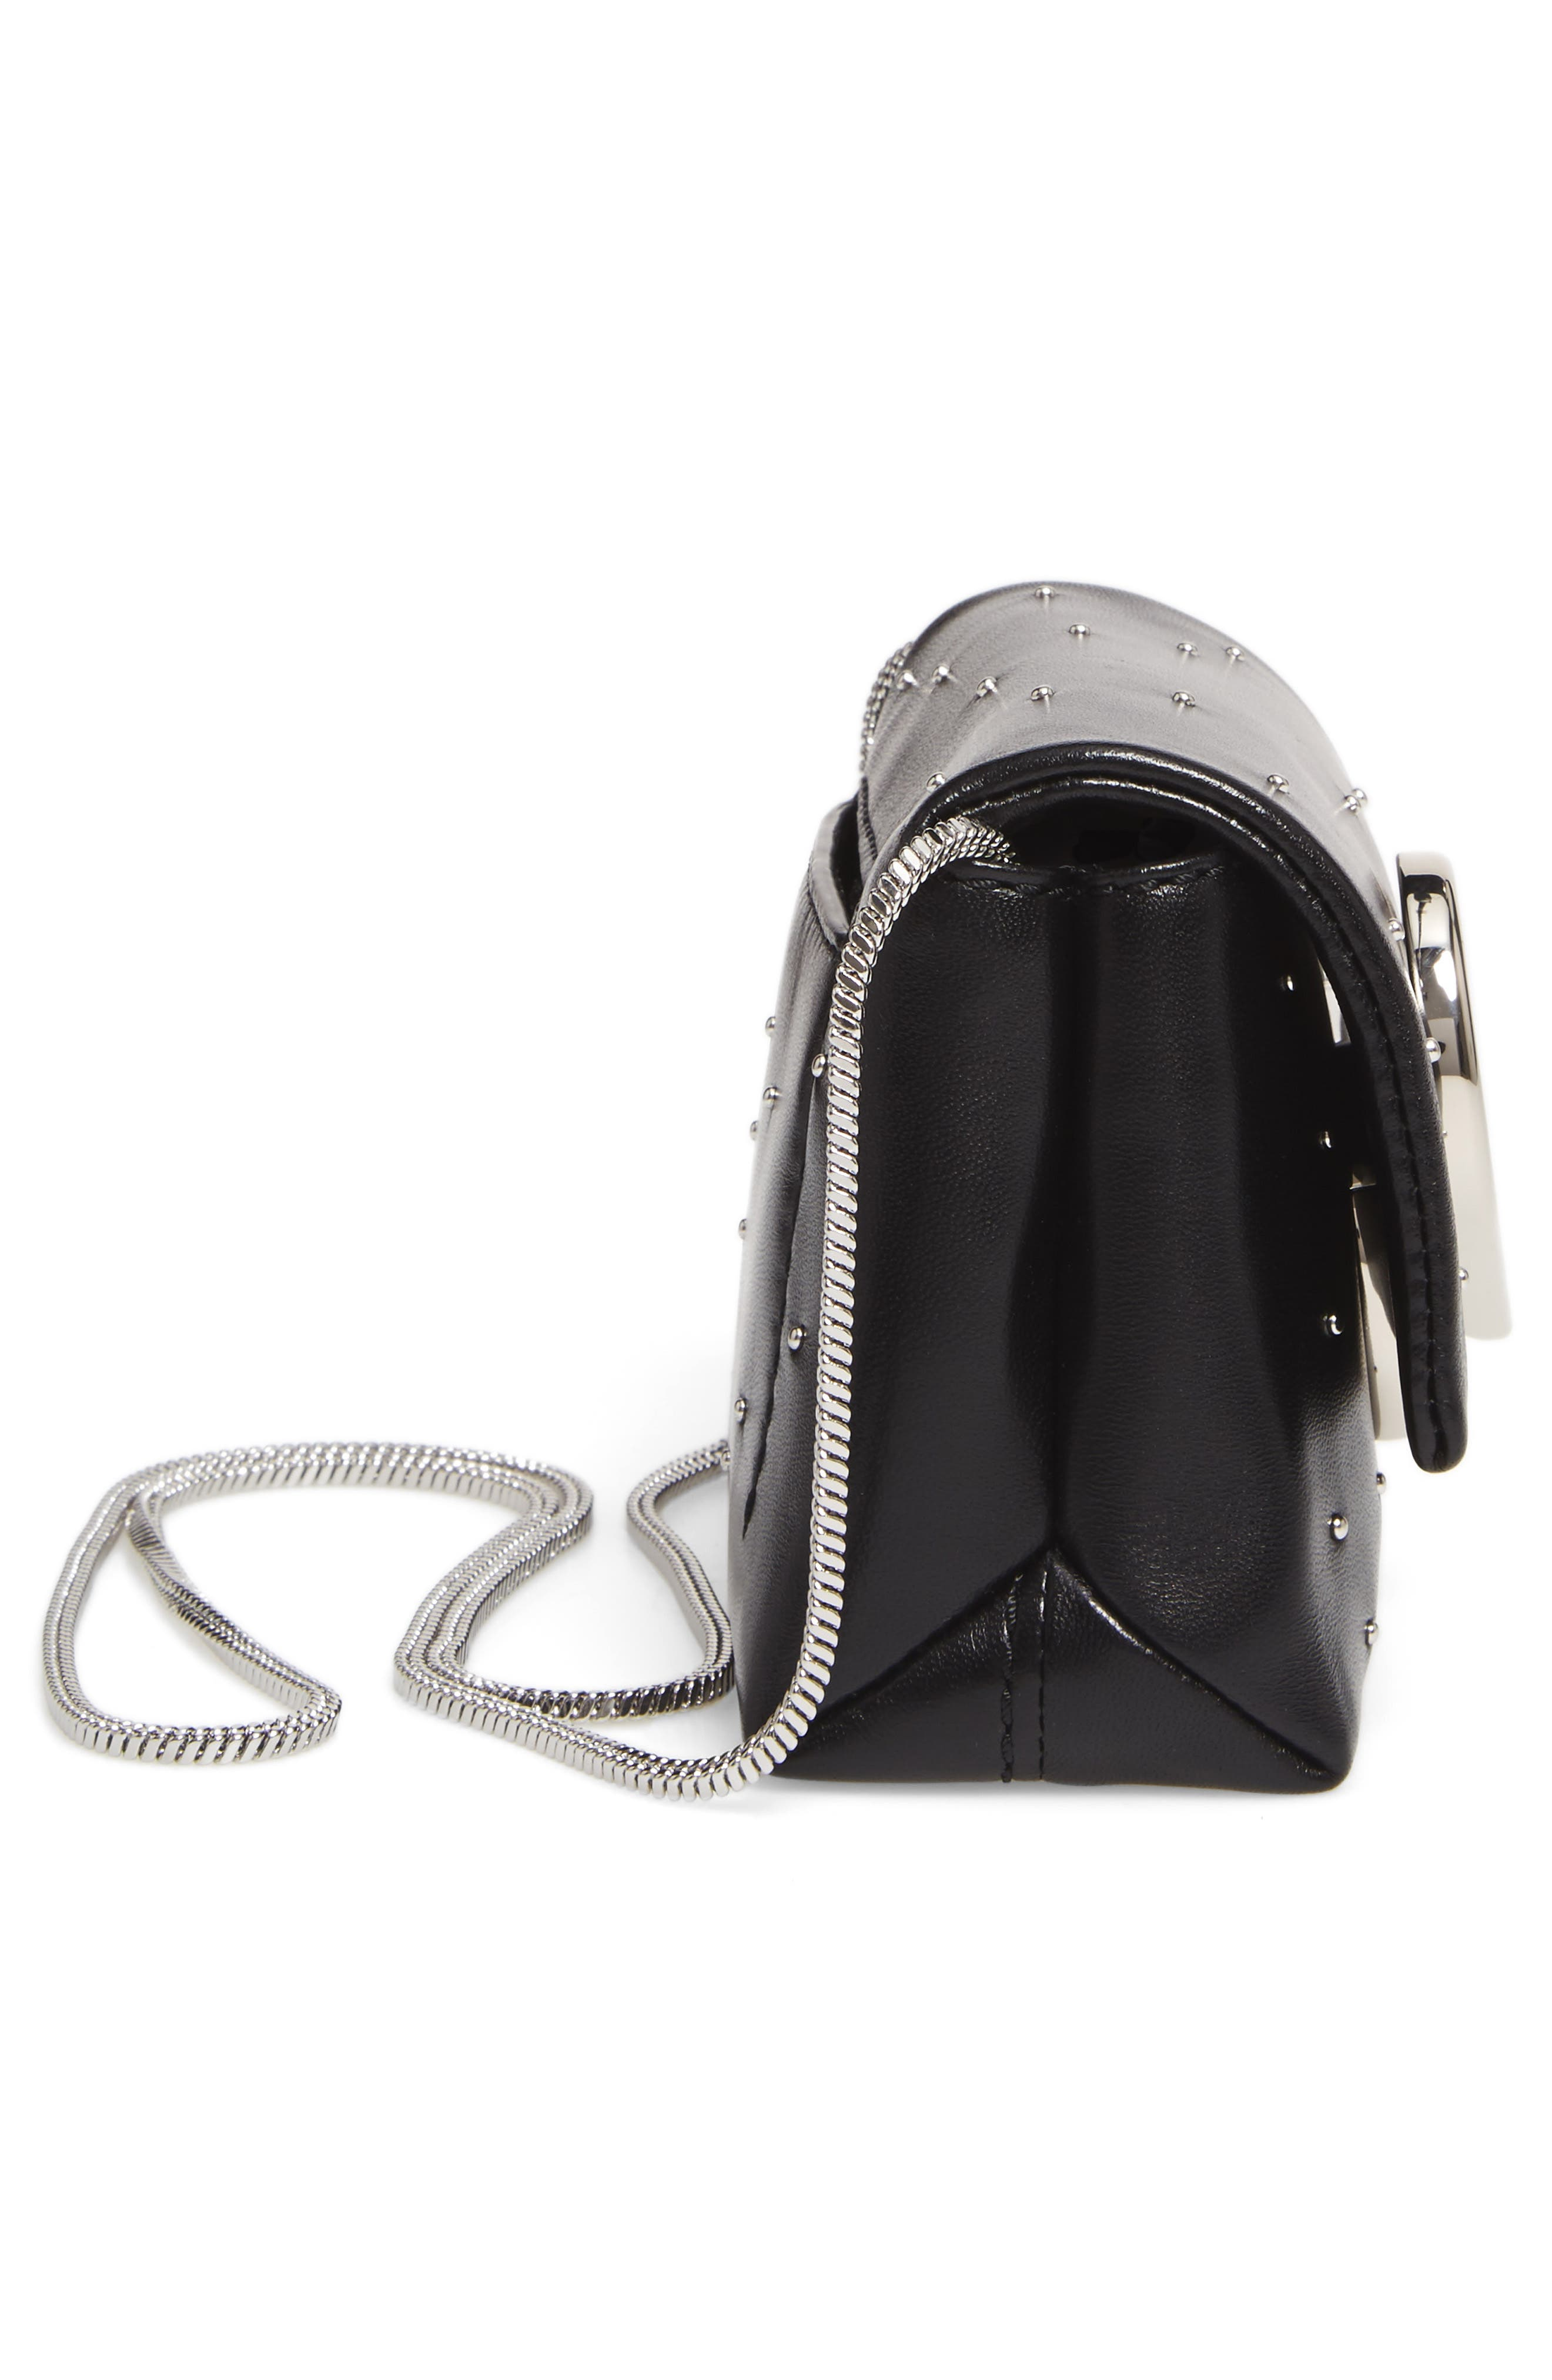 Micro Alix Leather Crossbody Bag,                             Alternate thumbnail 3, color,                             Black